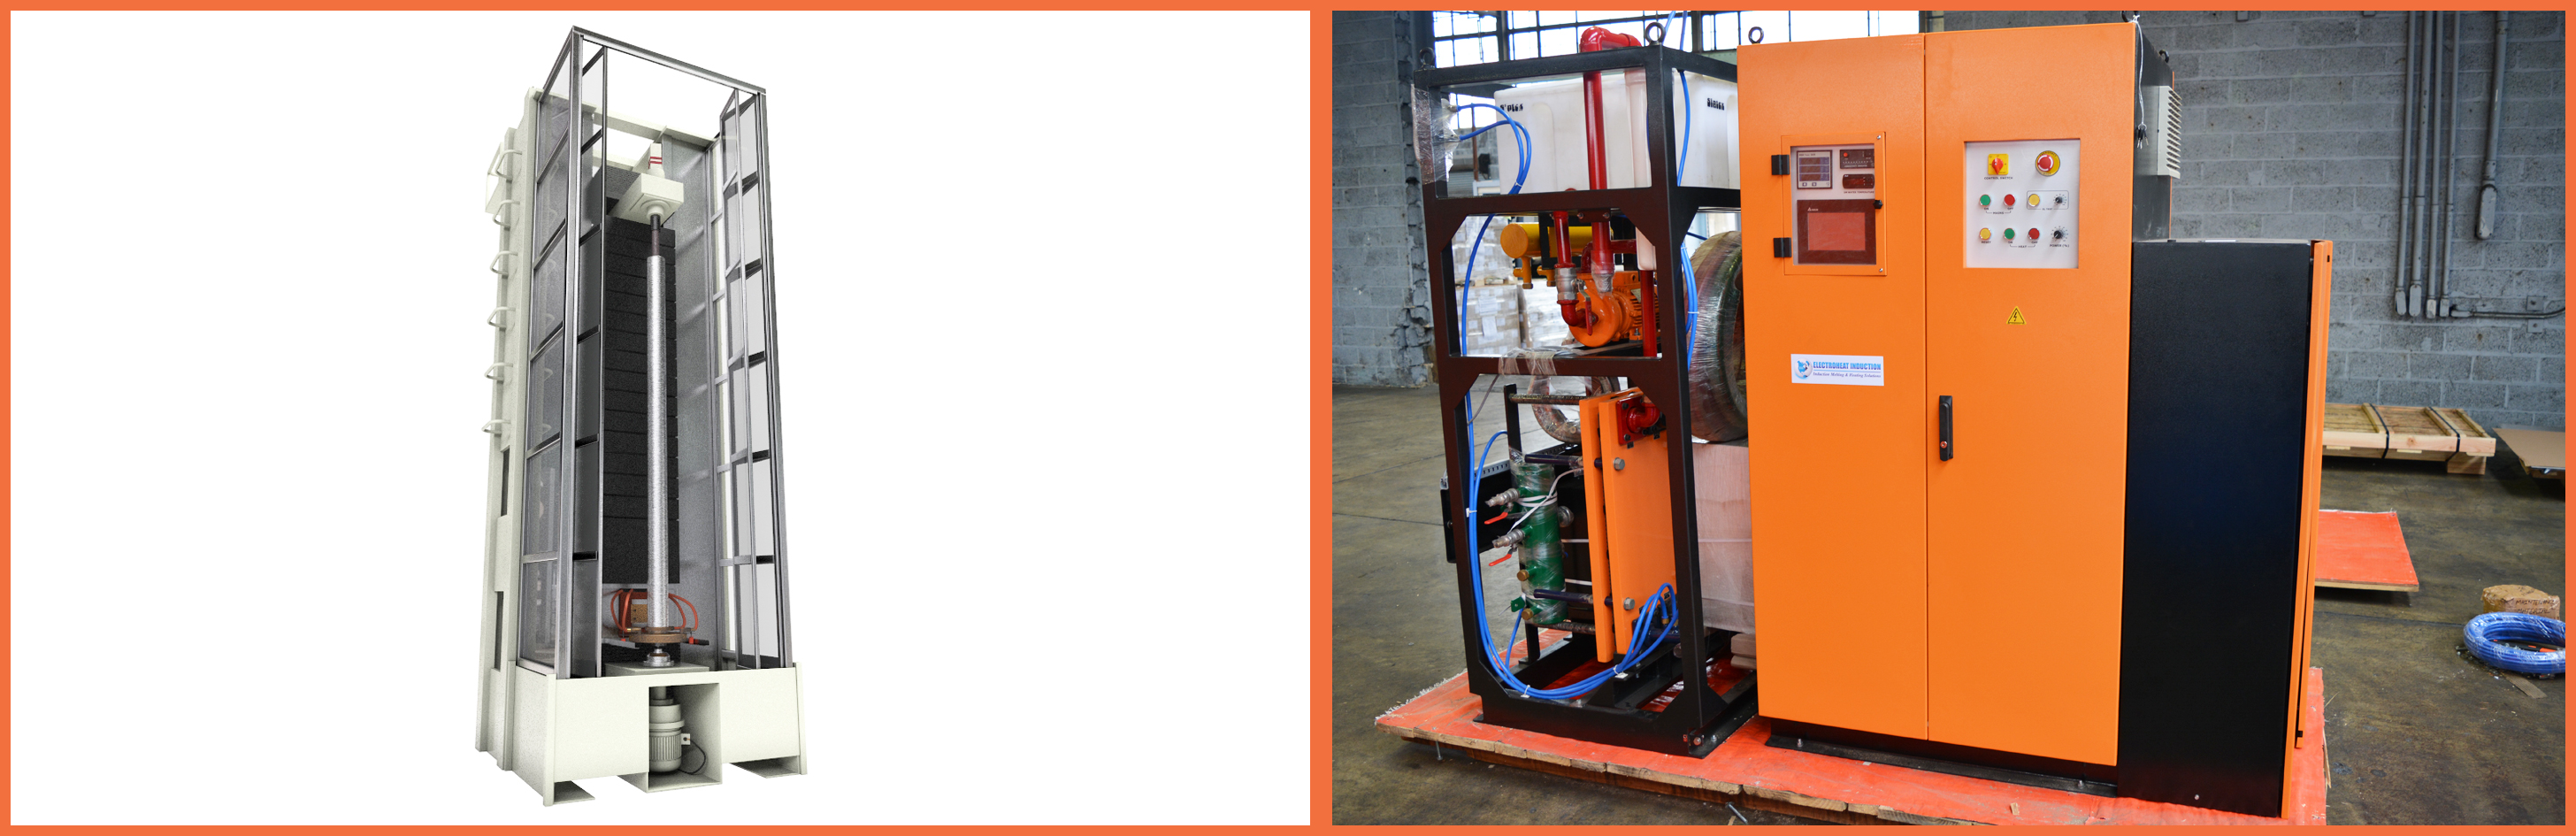 Quality Induction Heating Systems Reduce Operations Costs System